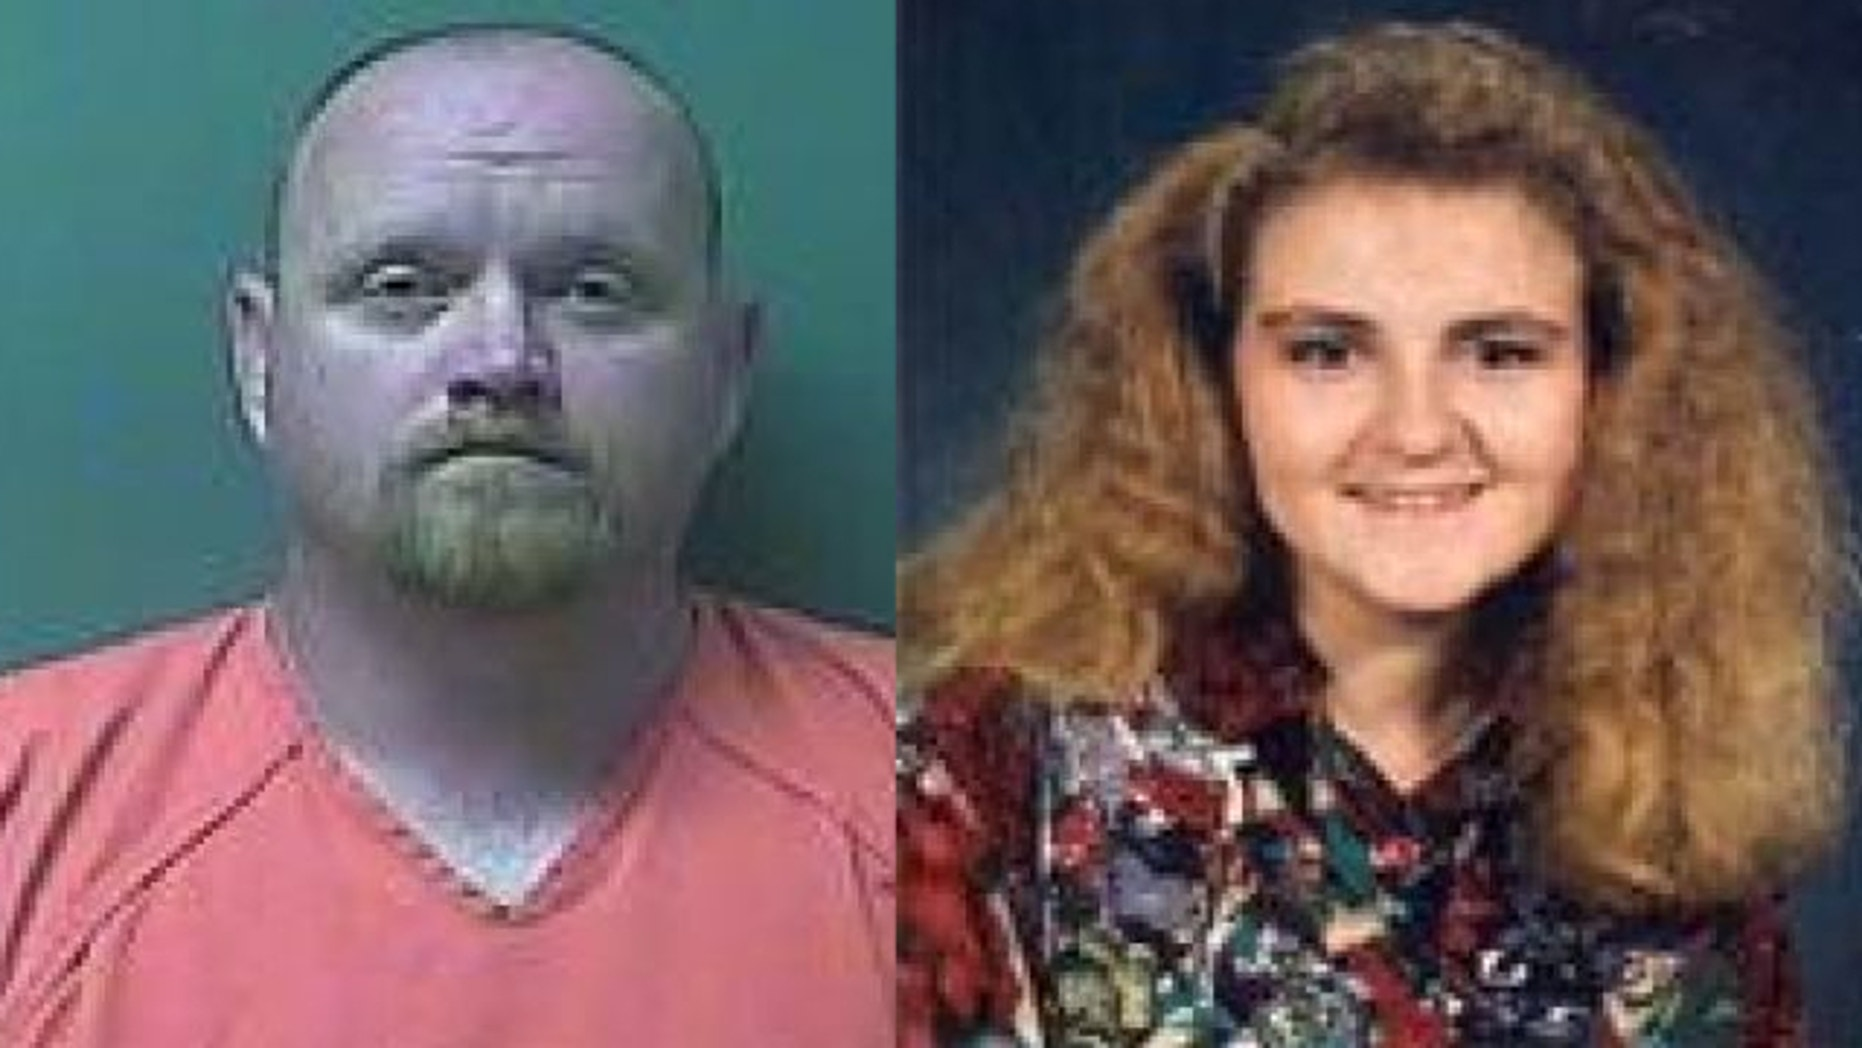 UNDATED: This photo provided by the Indiana State Police shows Jason Tibbs, 38, of LaPorte. Ind., and Rayna Rison, whose body was found in a shallow pond in 1993.